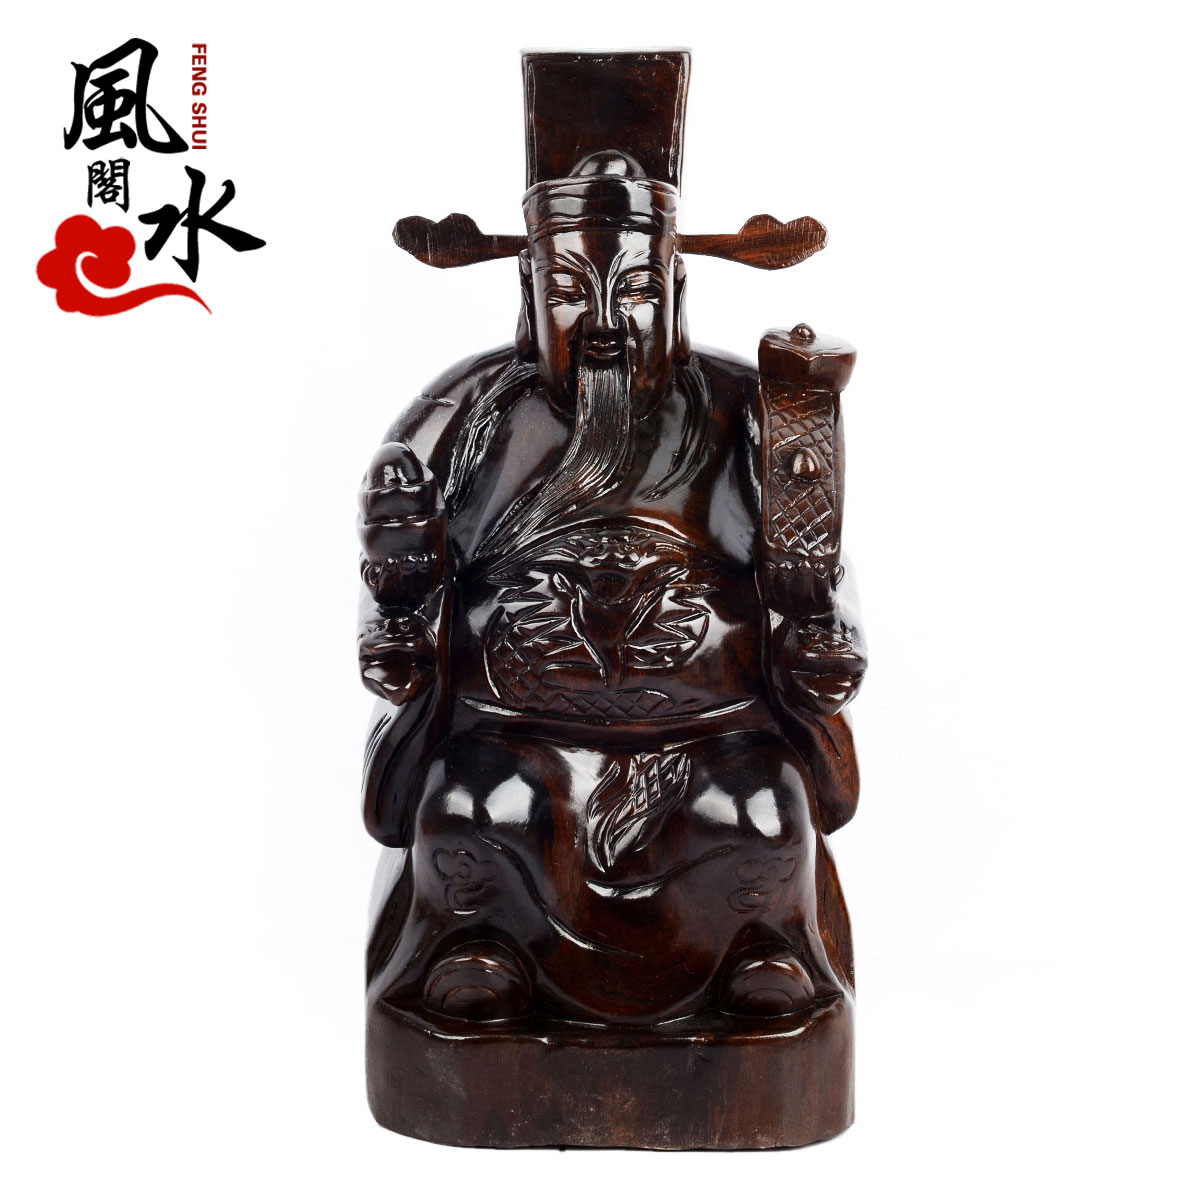 Feng shui court natural mahogany carving wen fortuna fortuna ornaments crafts home decorations put design crafts